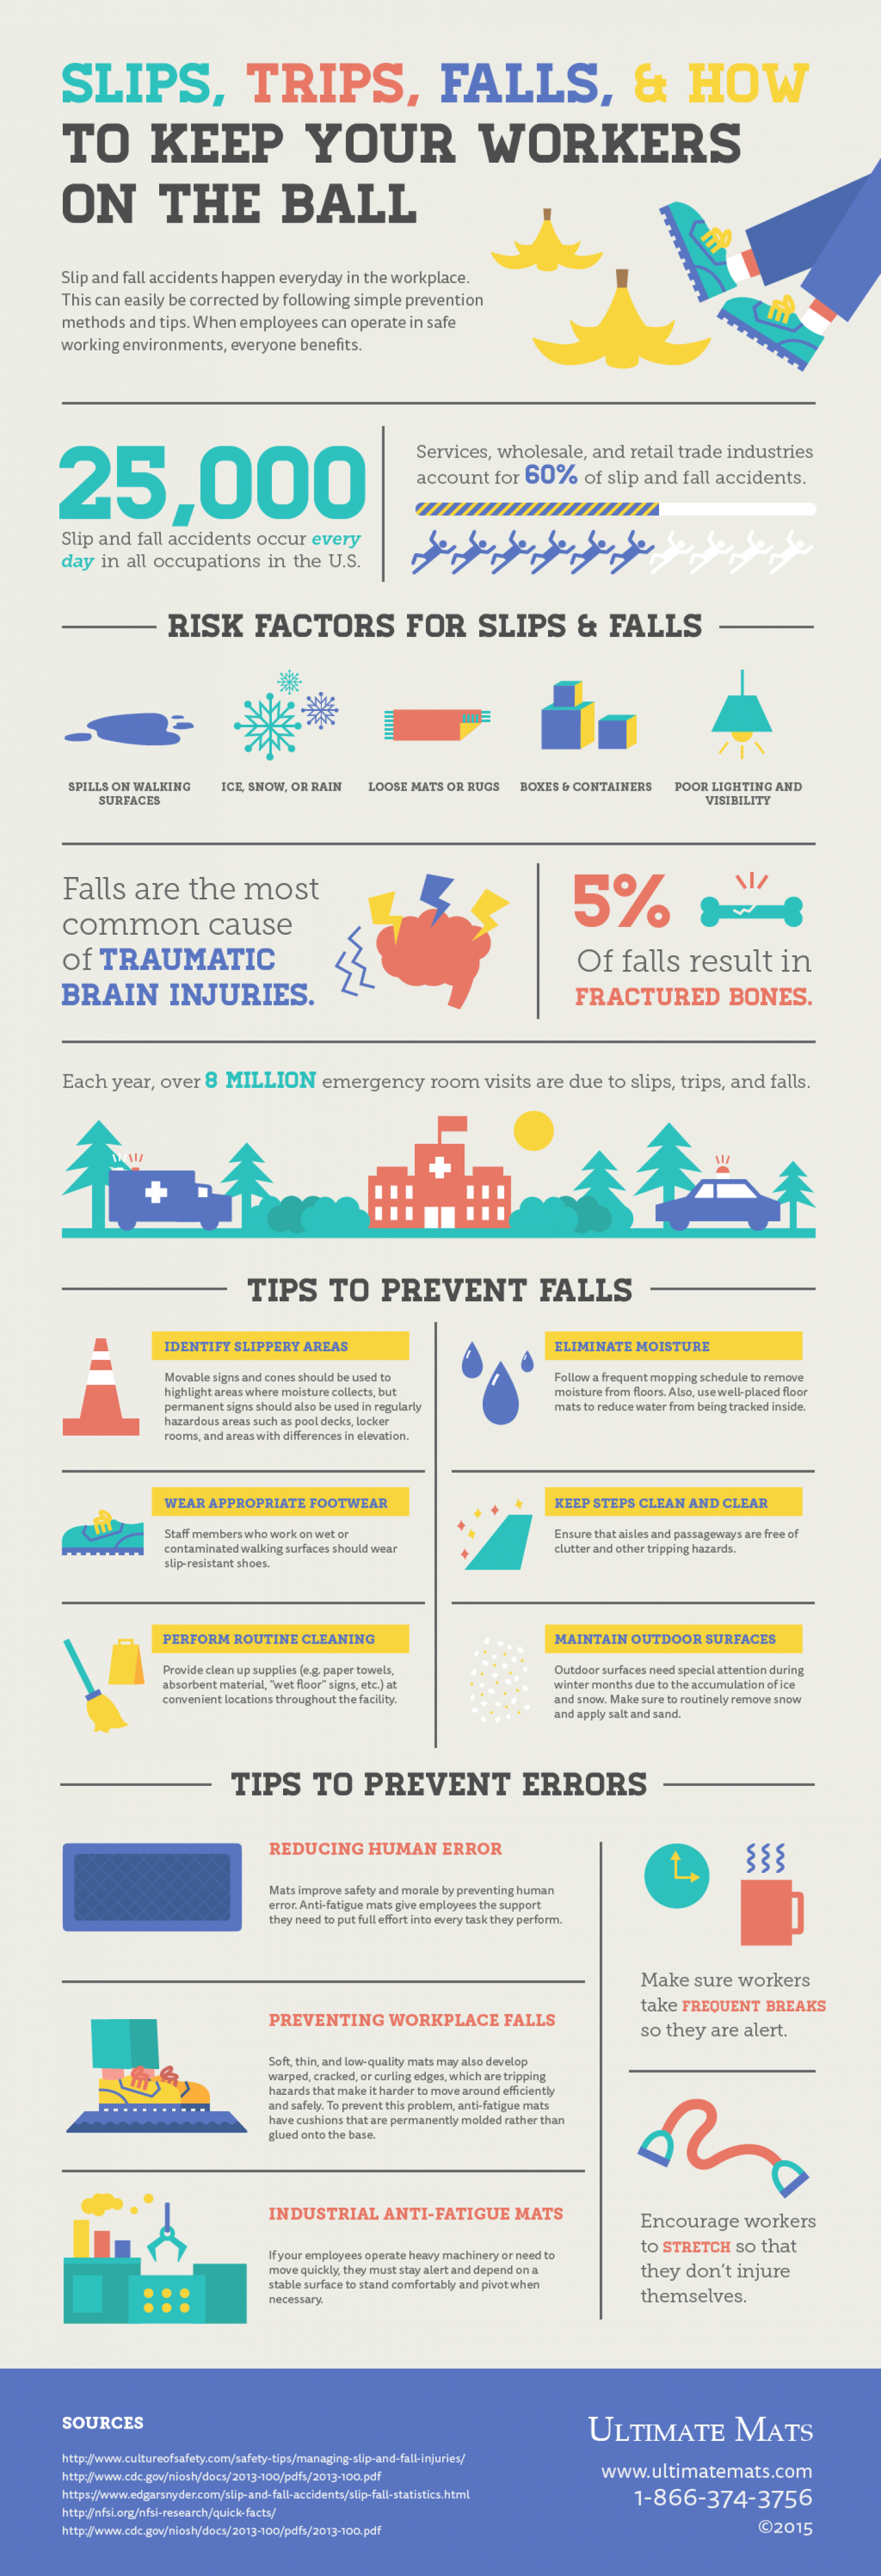 Slips, Trips, Falls & How to Keep Your Workers On The Ball Infographic